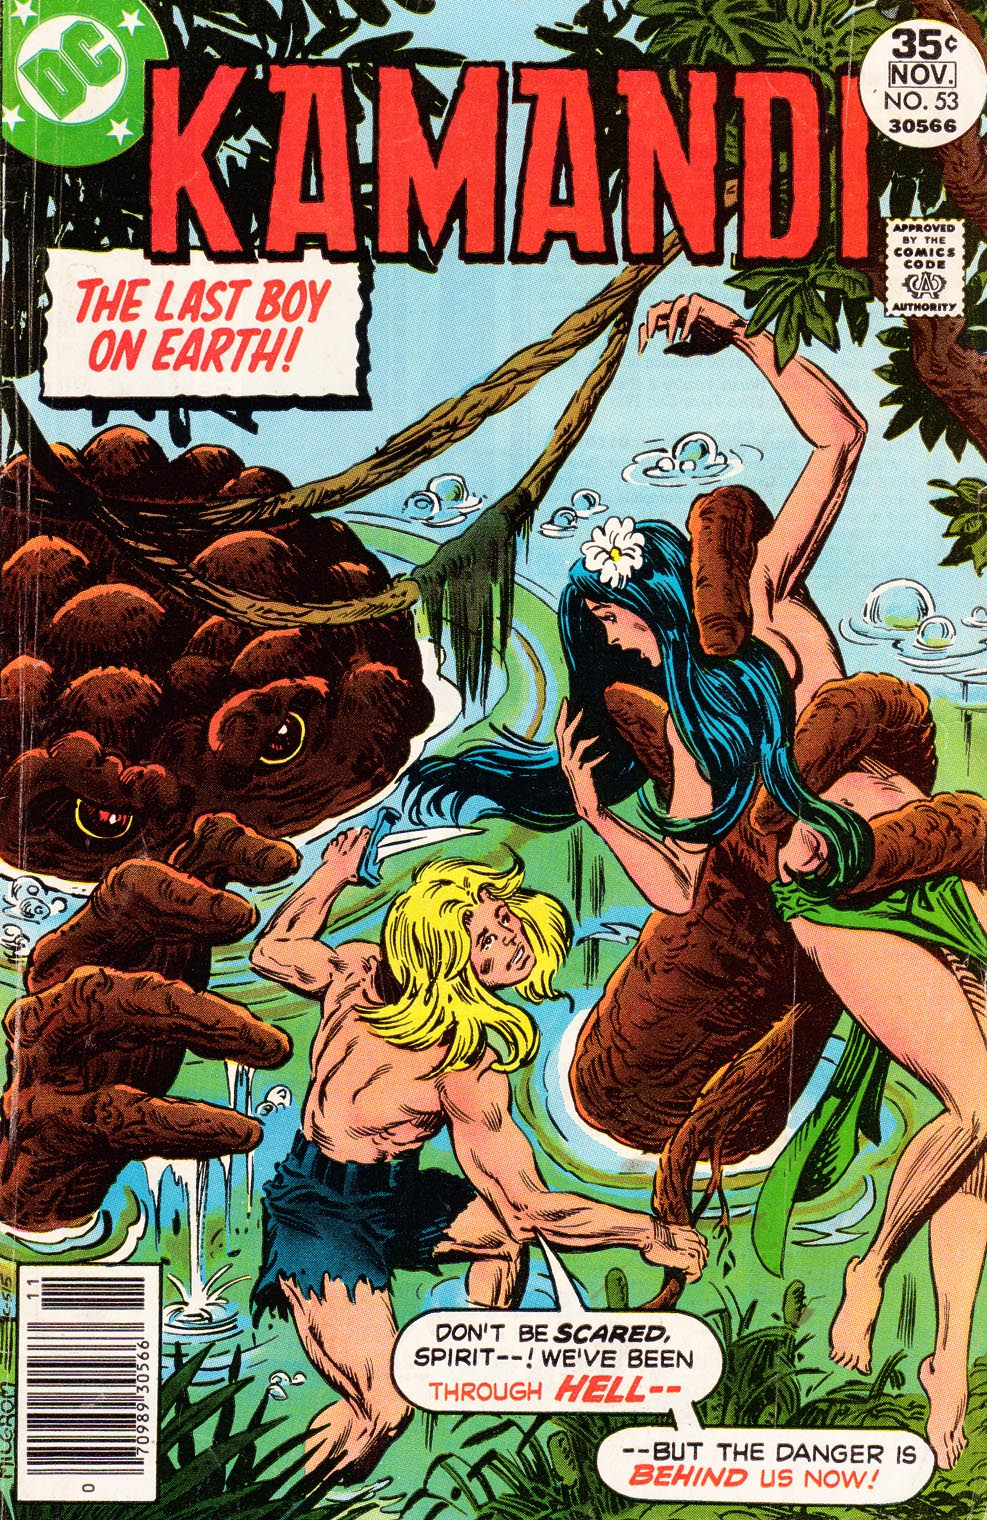 Kamandi (1975) #53, written by Jack C Harris.